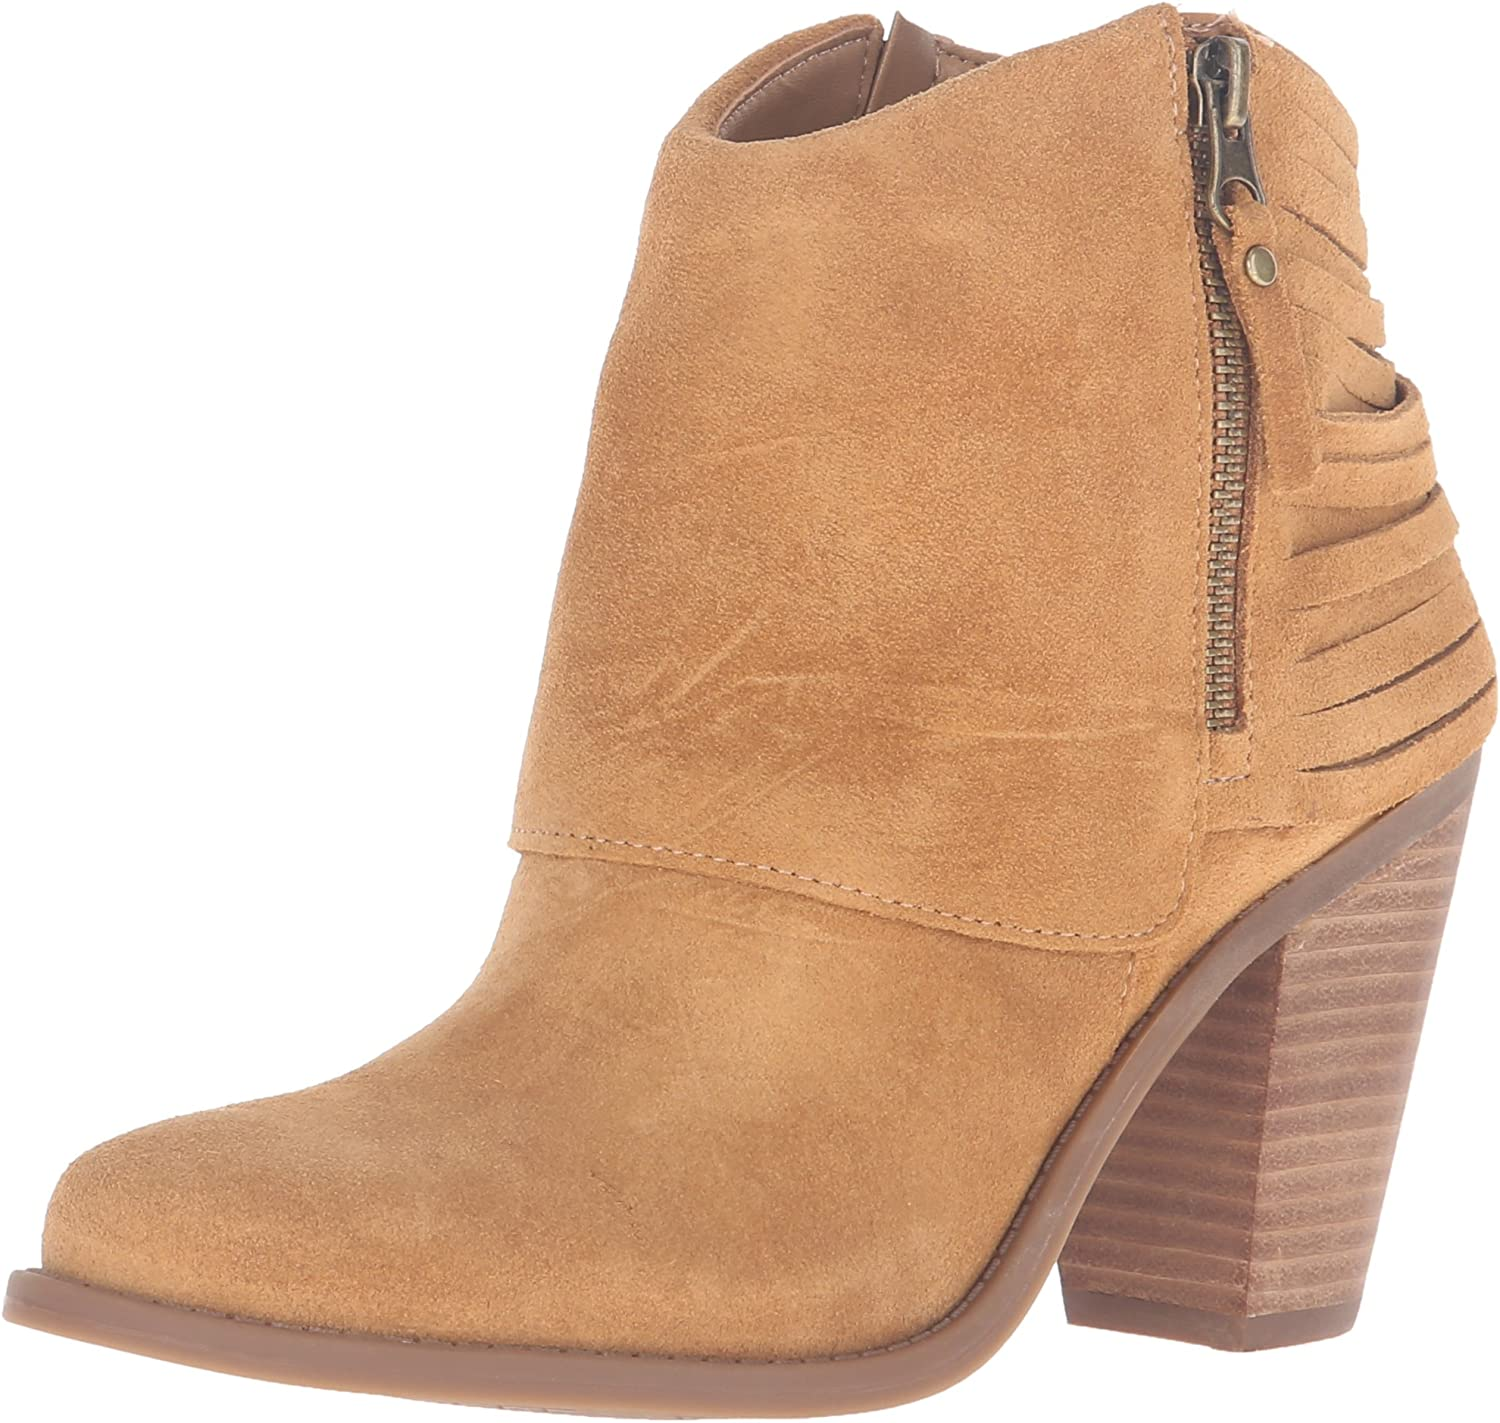 Jessica Simpson Womens Cerrina Ankle Boot